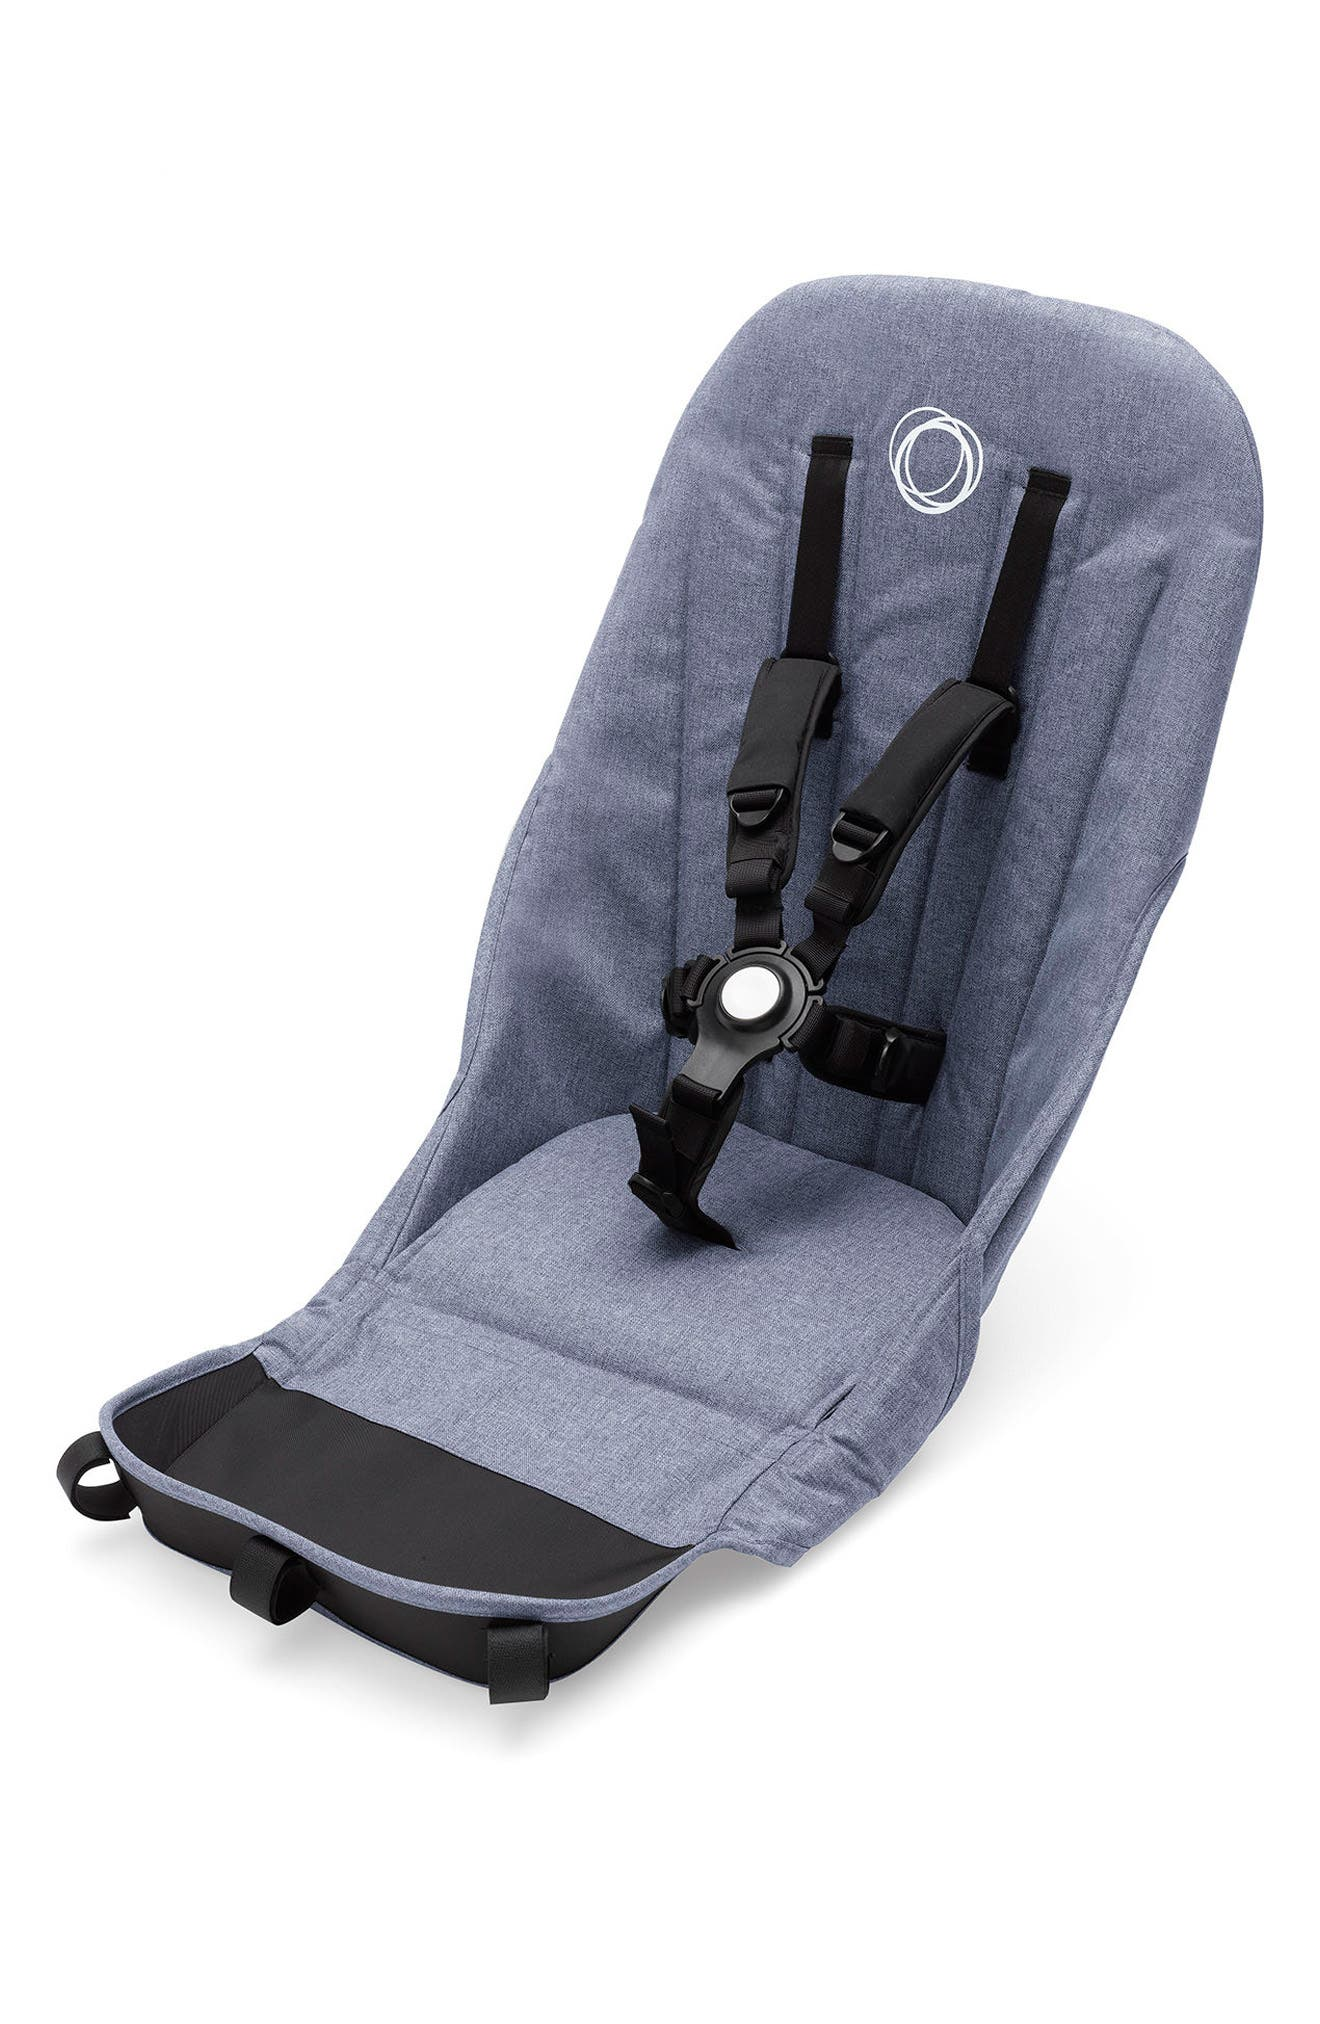 Bugaboo Base Fabric Set for Donkey2 Duo Stroller